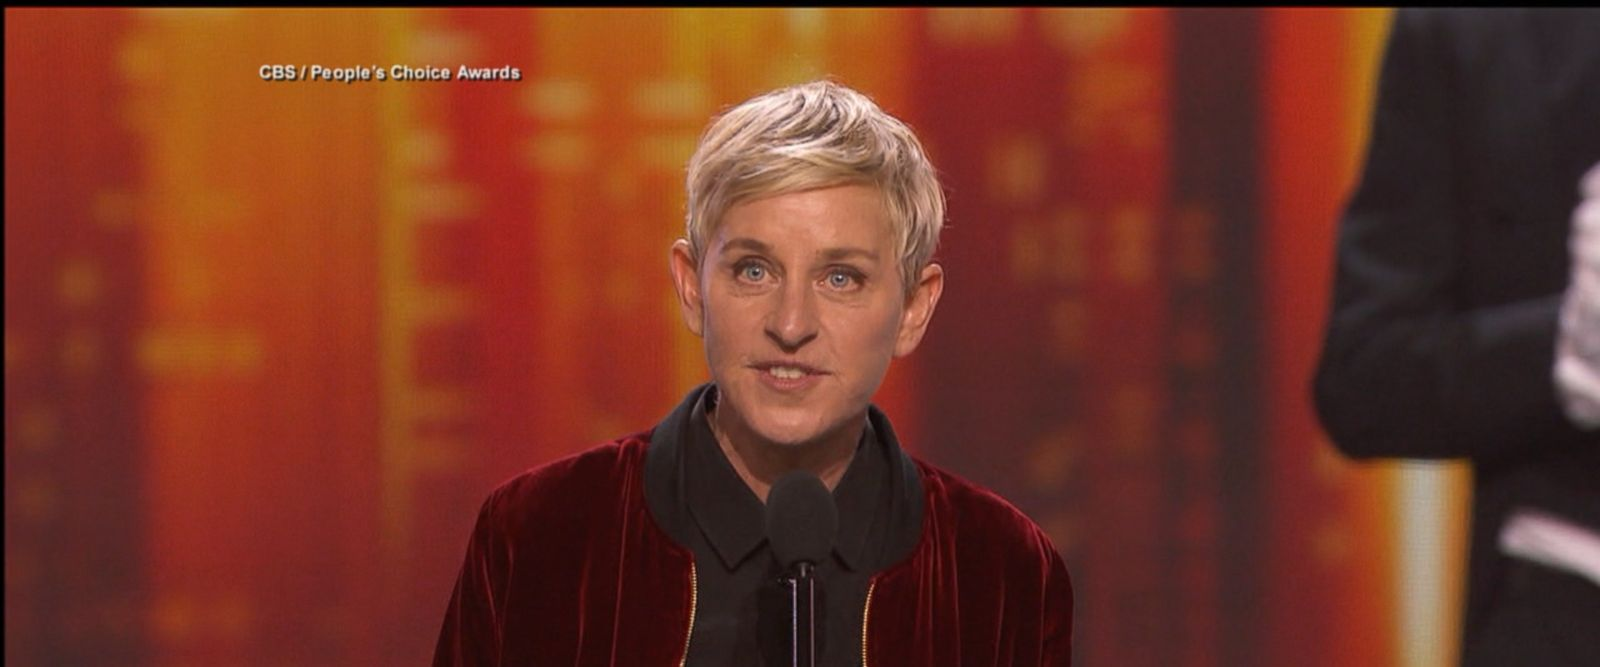 VIDEO: Ellen DeGeneres made People's Choice Awards history Wednesday night, winning three trophies to bring her lifetime total wins to 20, the most of any person in the award show's history.